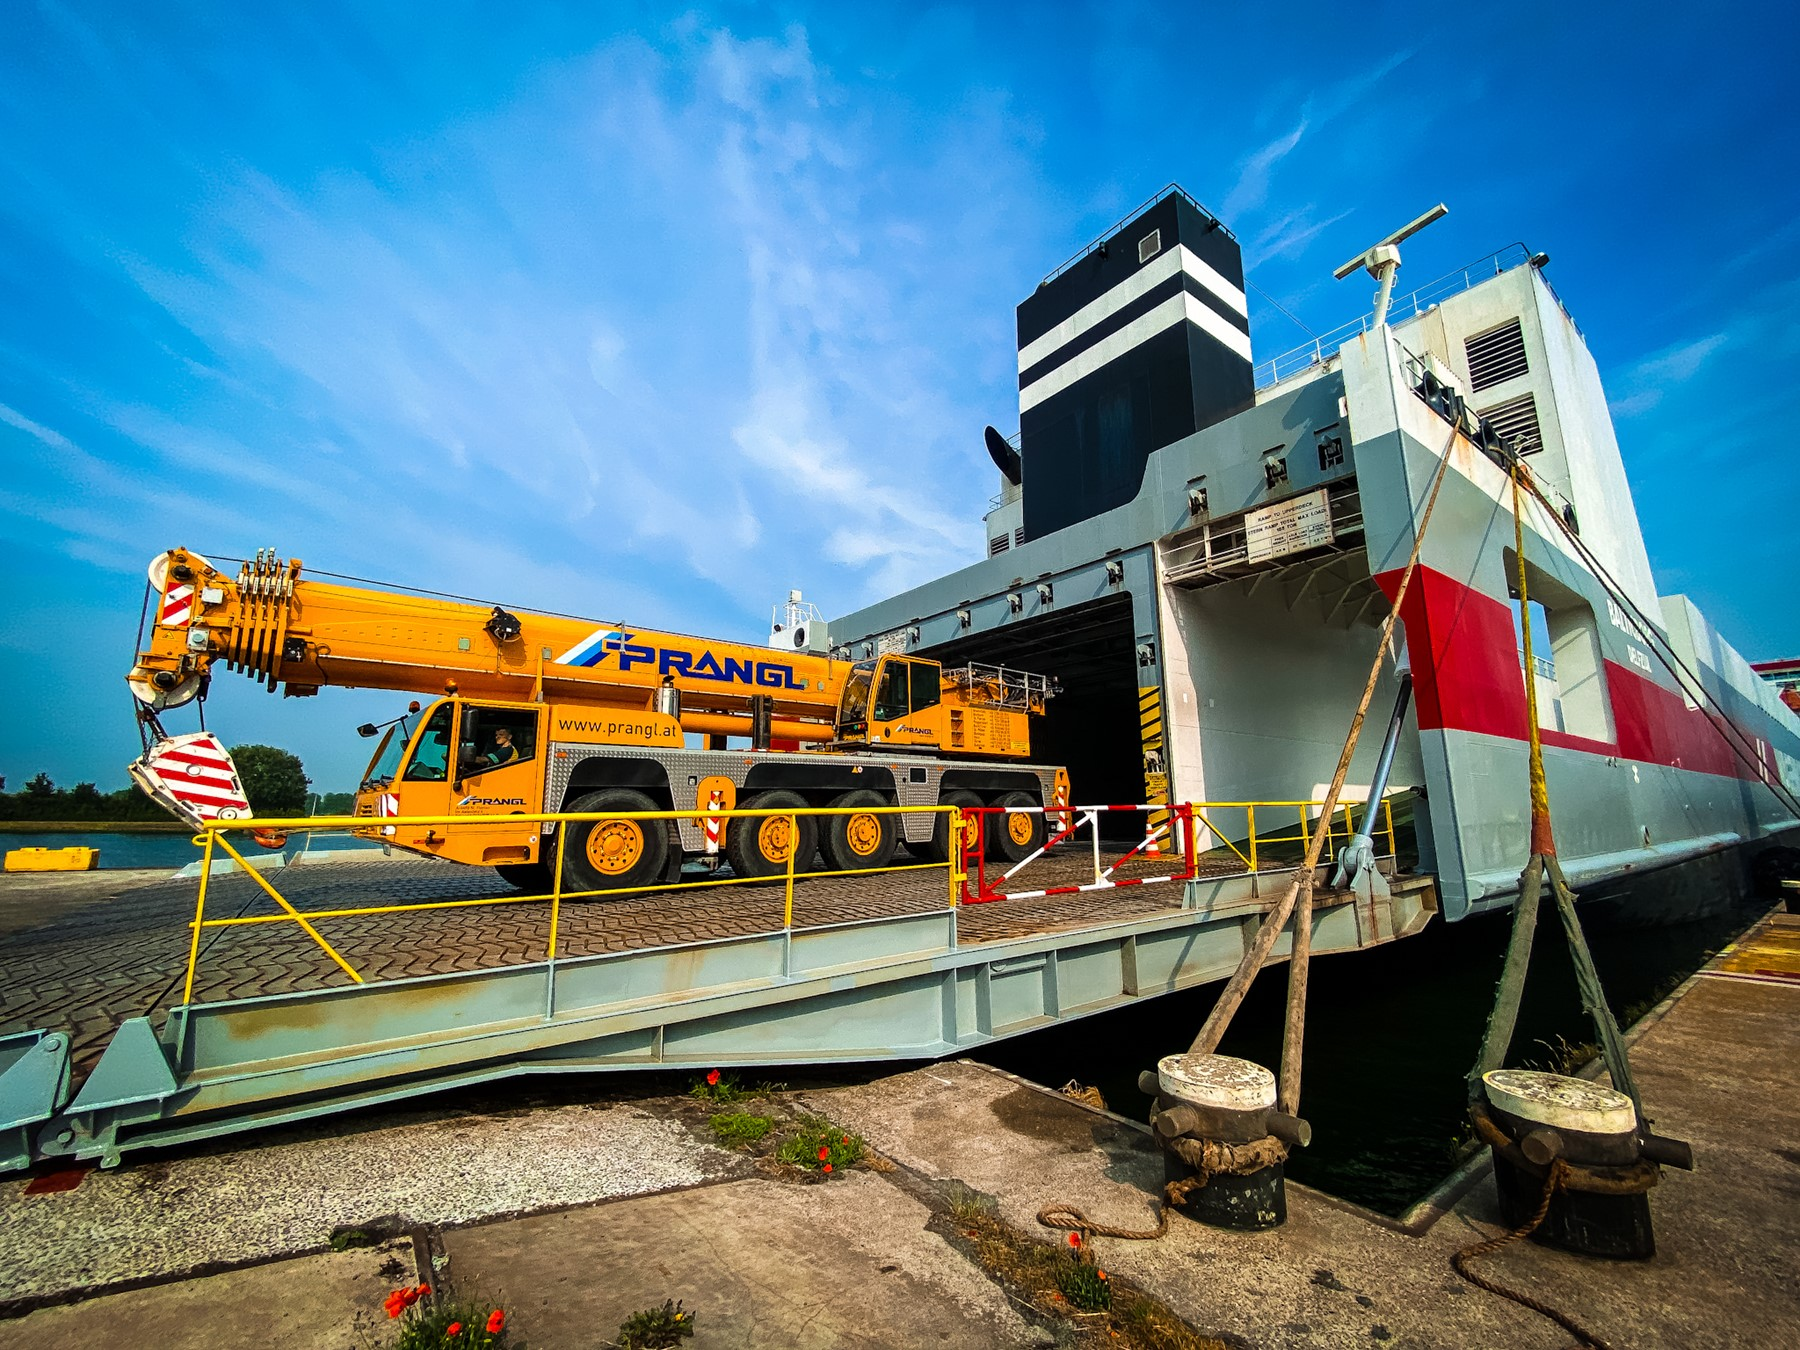 Wagenborg to ship large turbines with its RoRo liner service